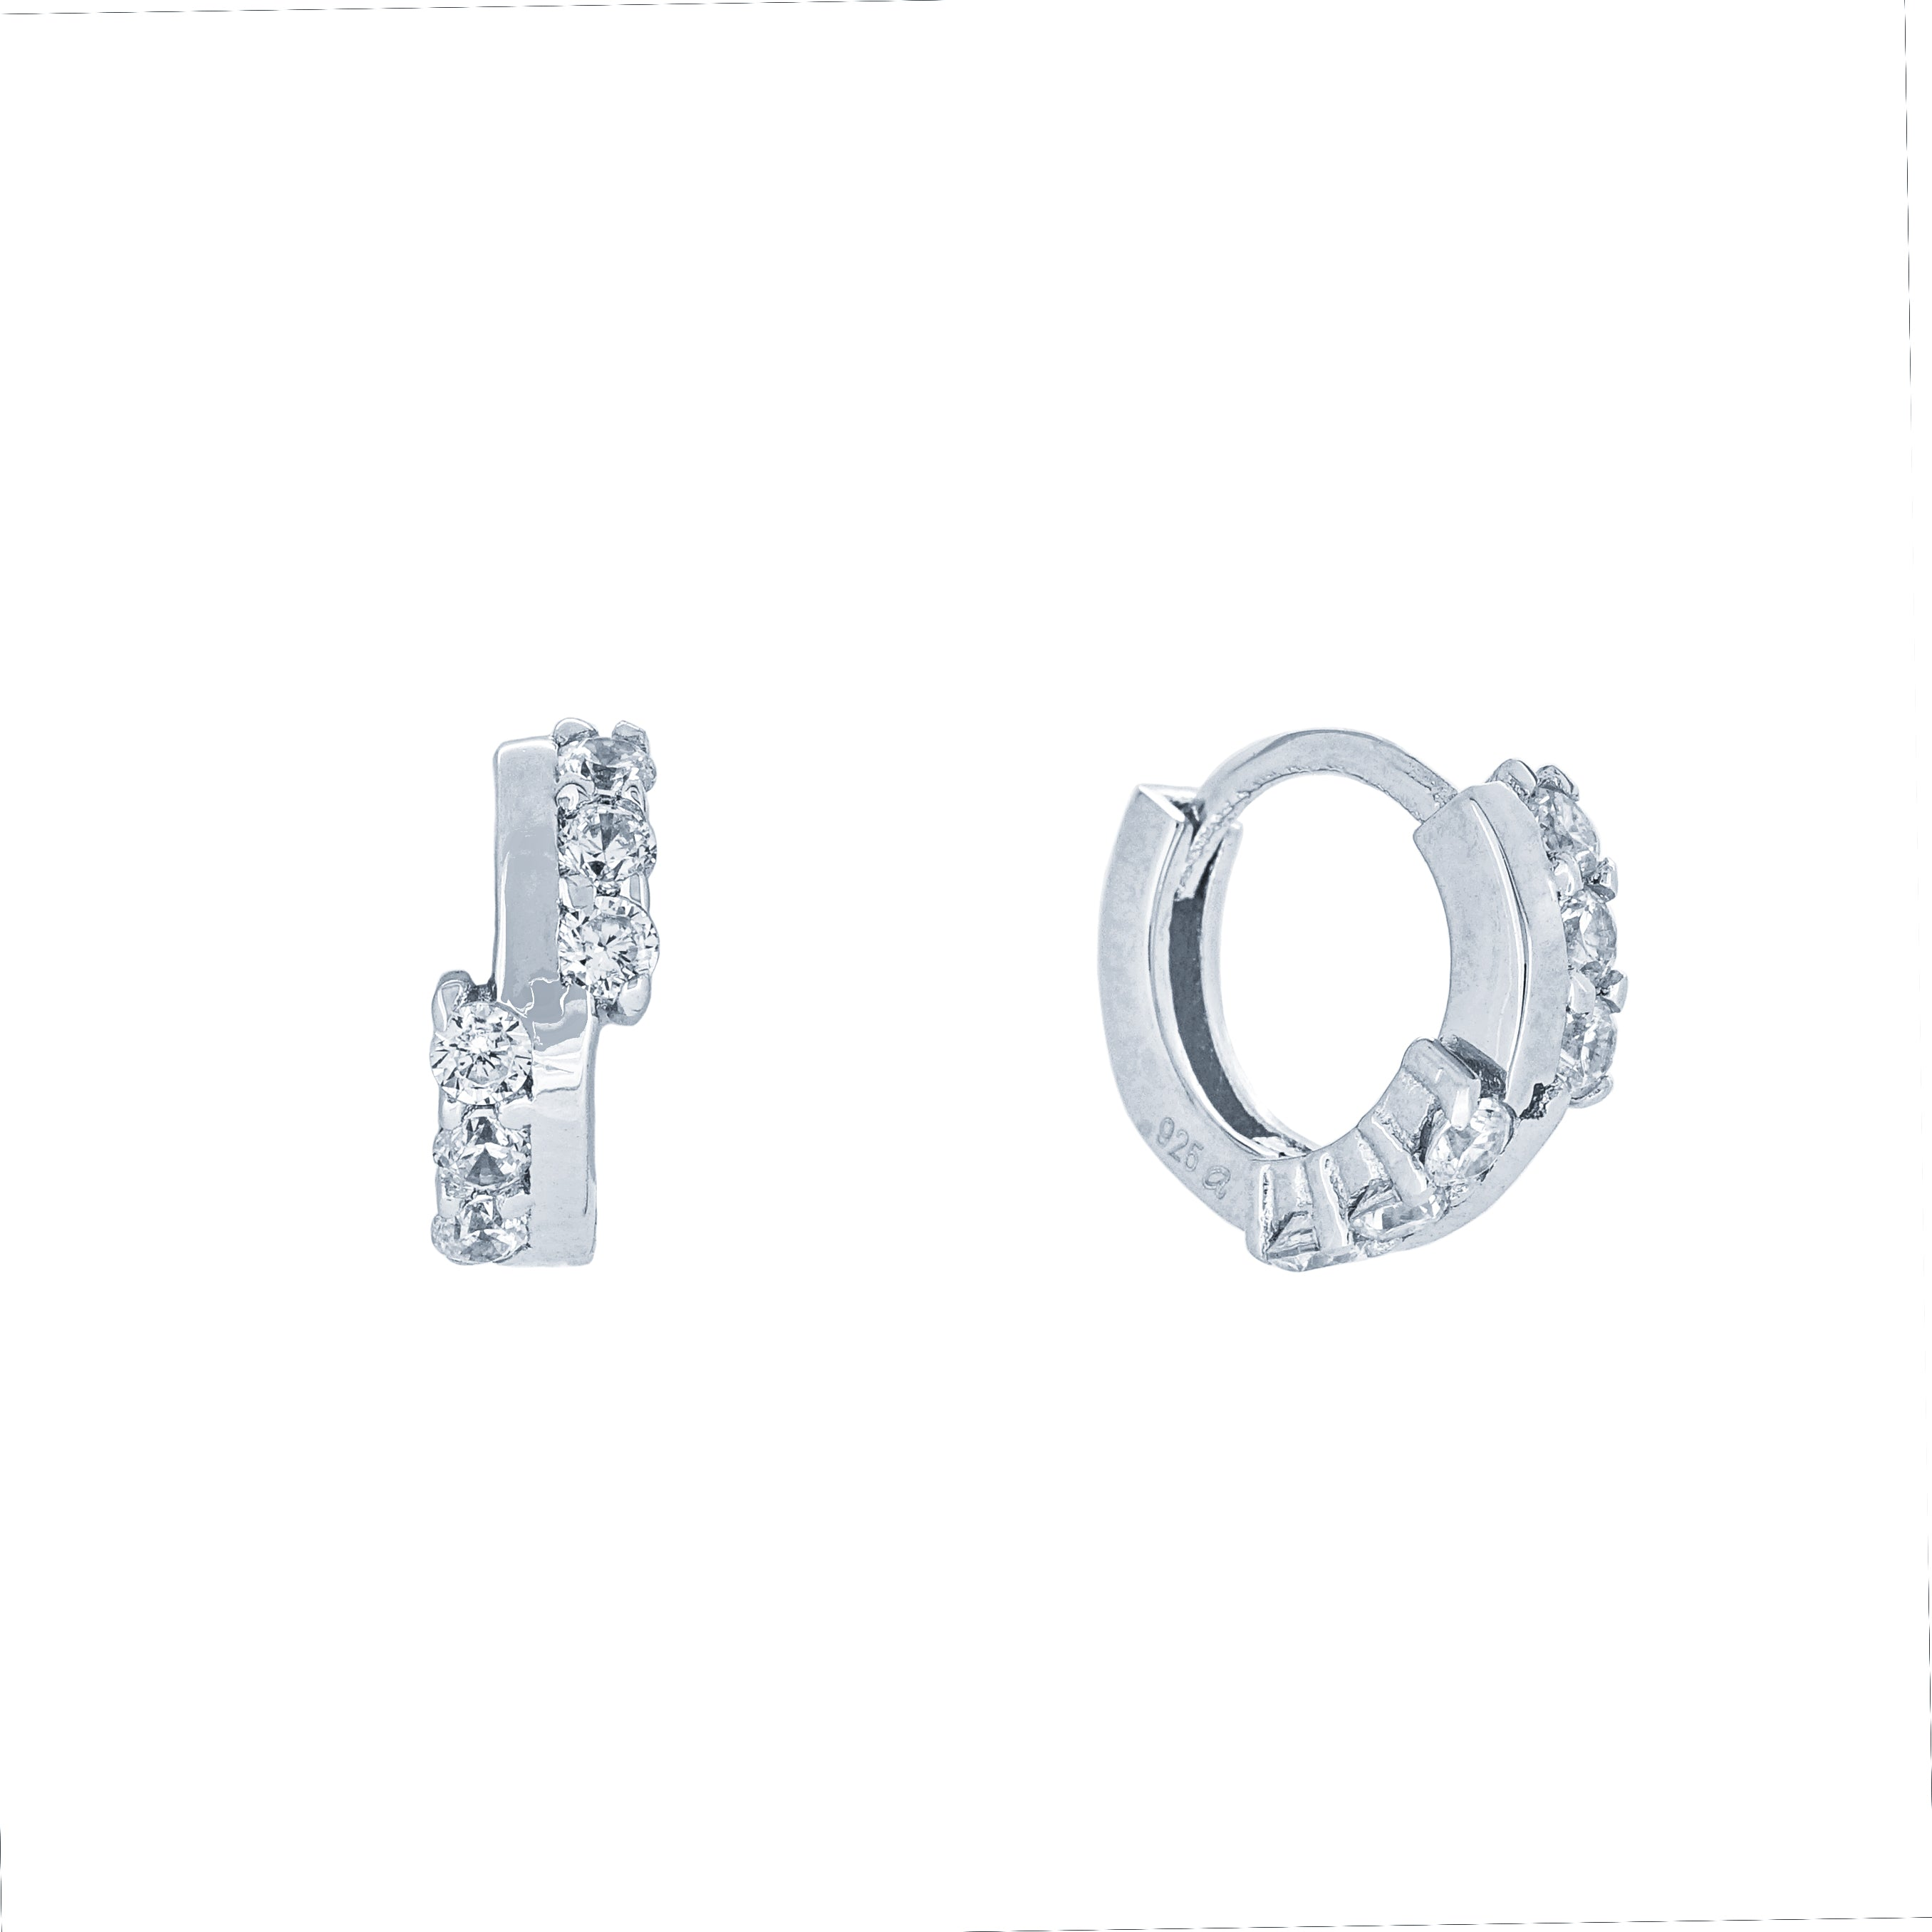 (100125) White Cubic Zirconia 12mm Hoop Earrings In Sterling Silver